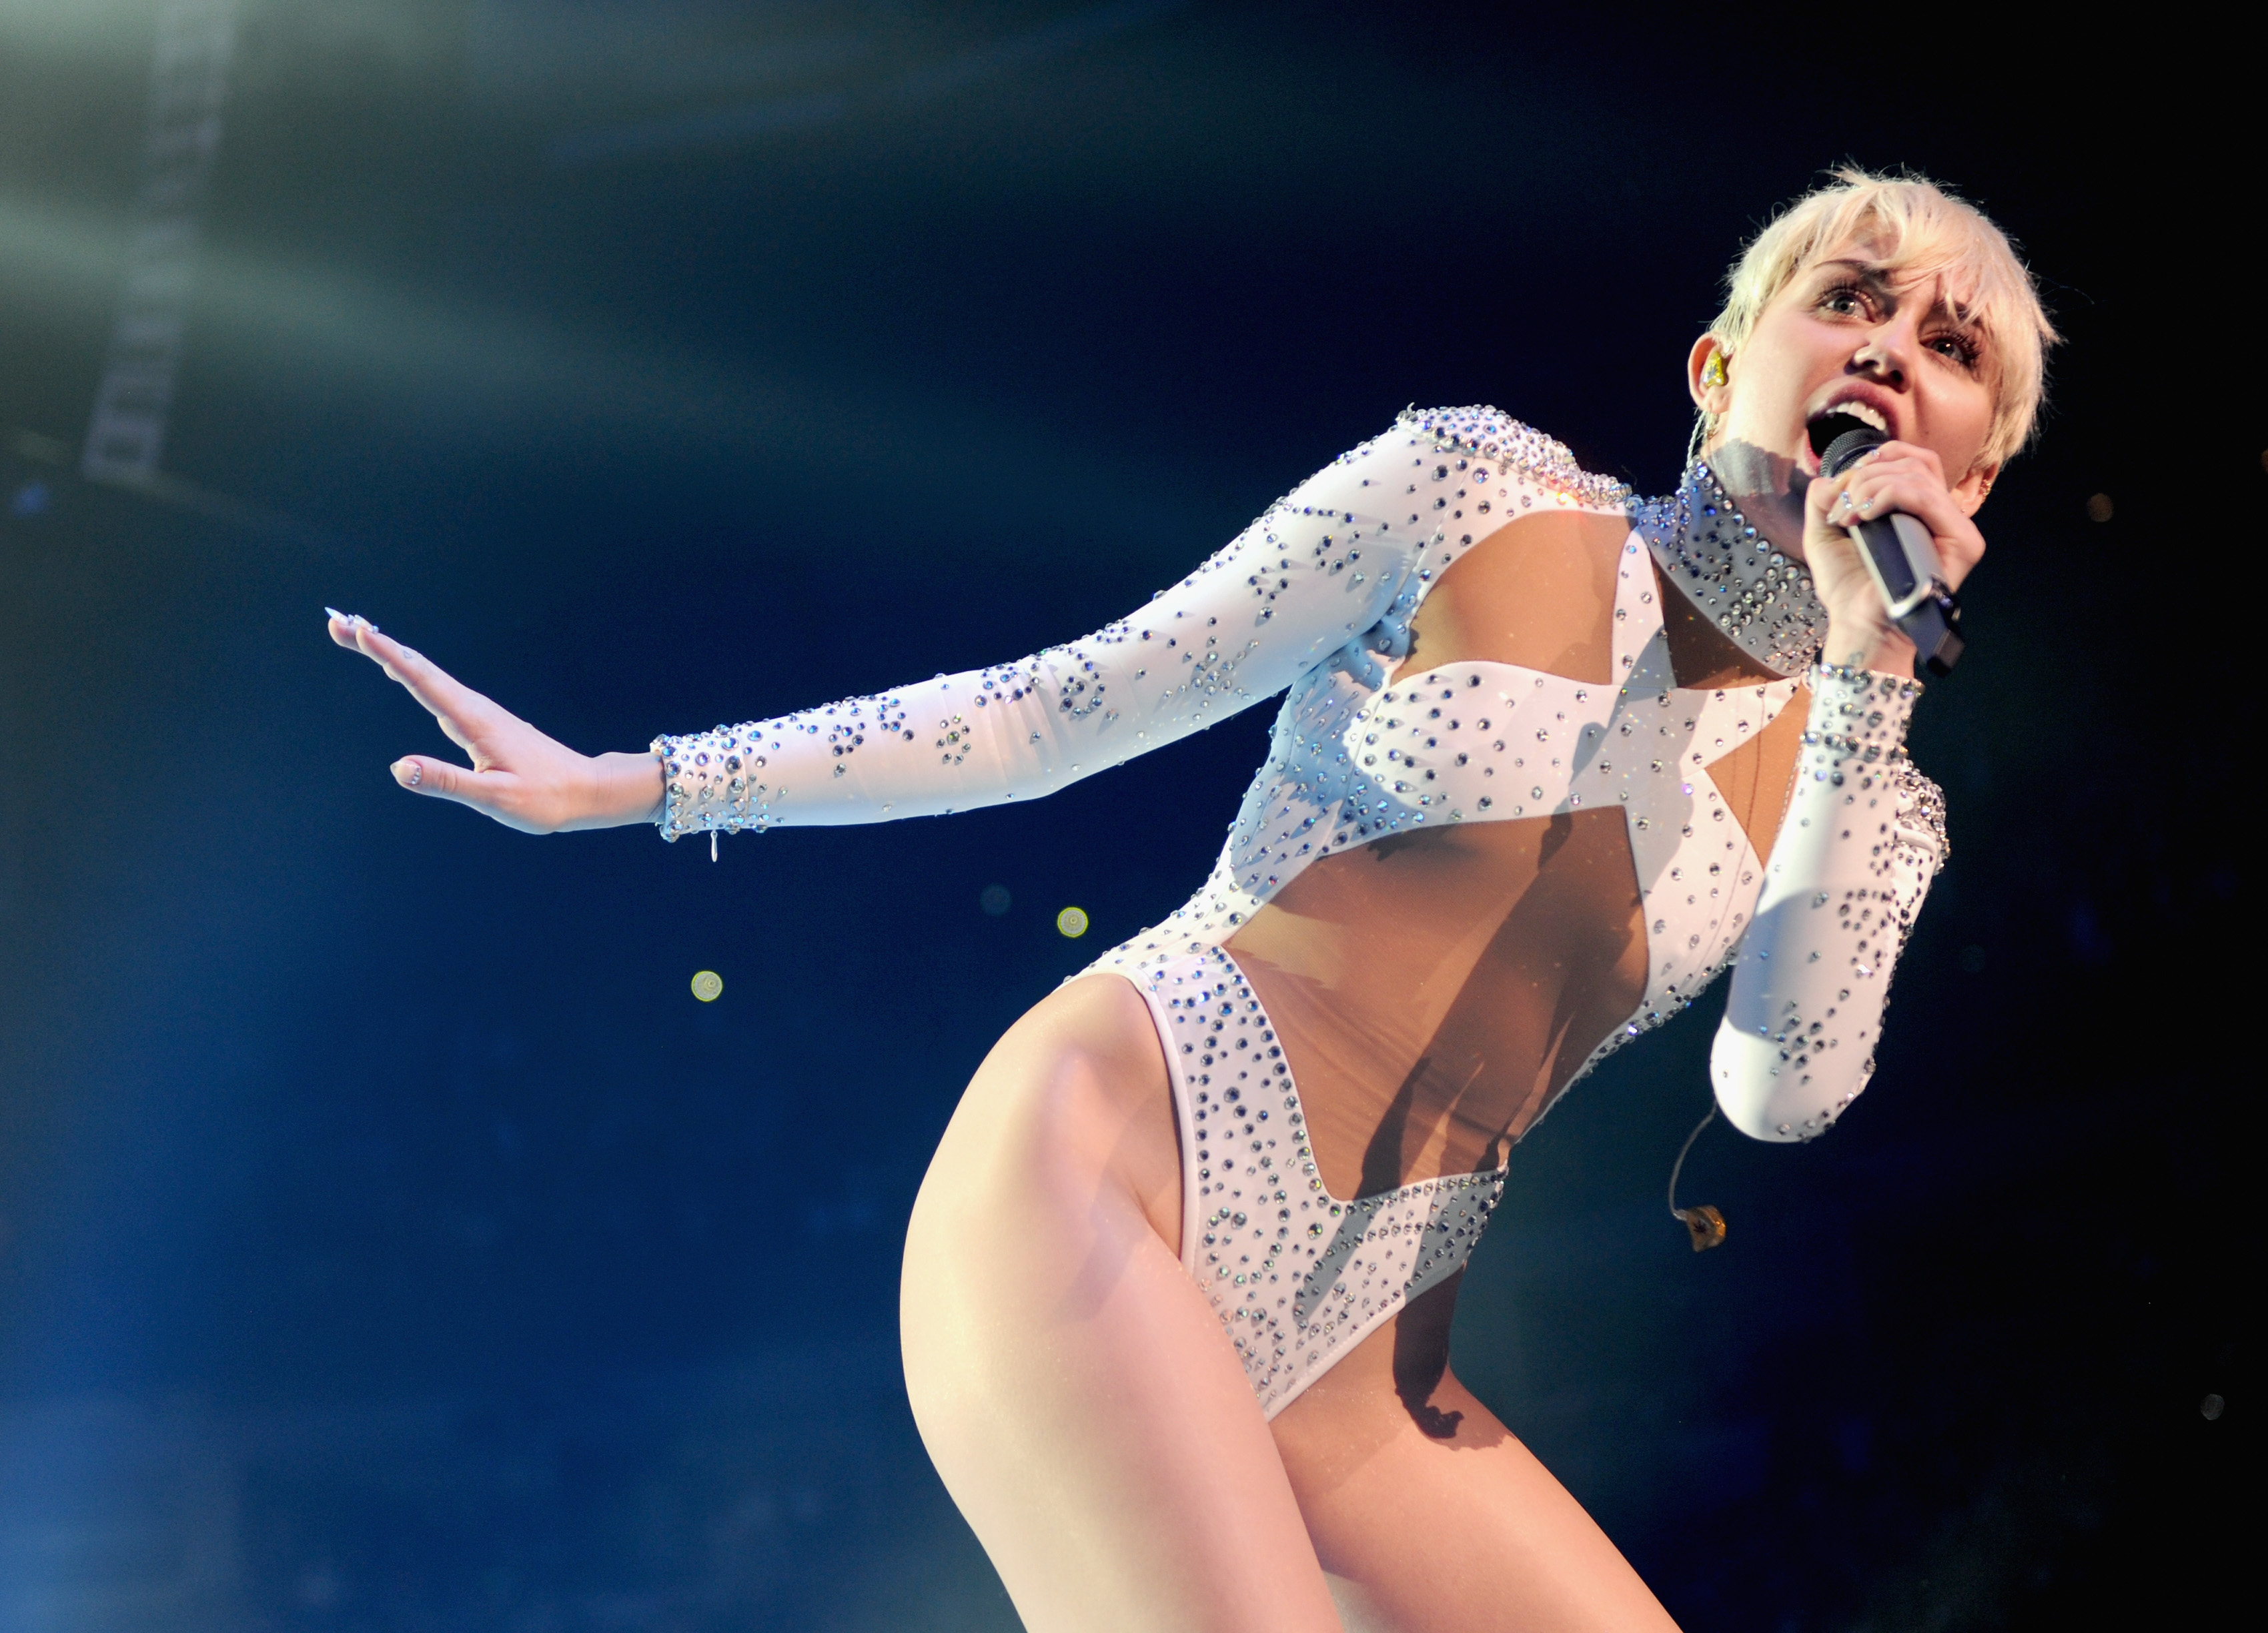 VANCOUVER, BC - FEBRUARY 14:  (EXCLUSIVE COVERAGE) Miley Cyrus performs onstage during her 'Bangerz' tour at Rogers Arena on